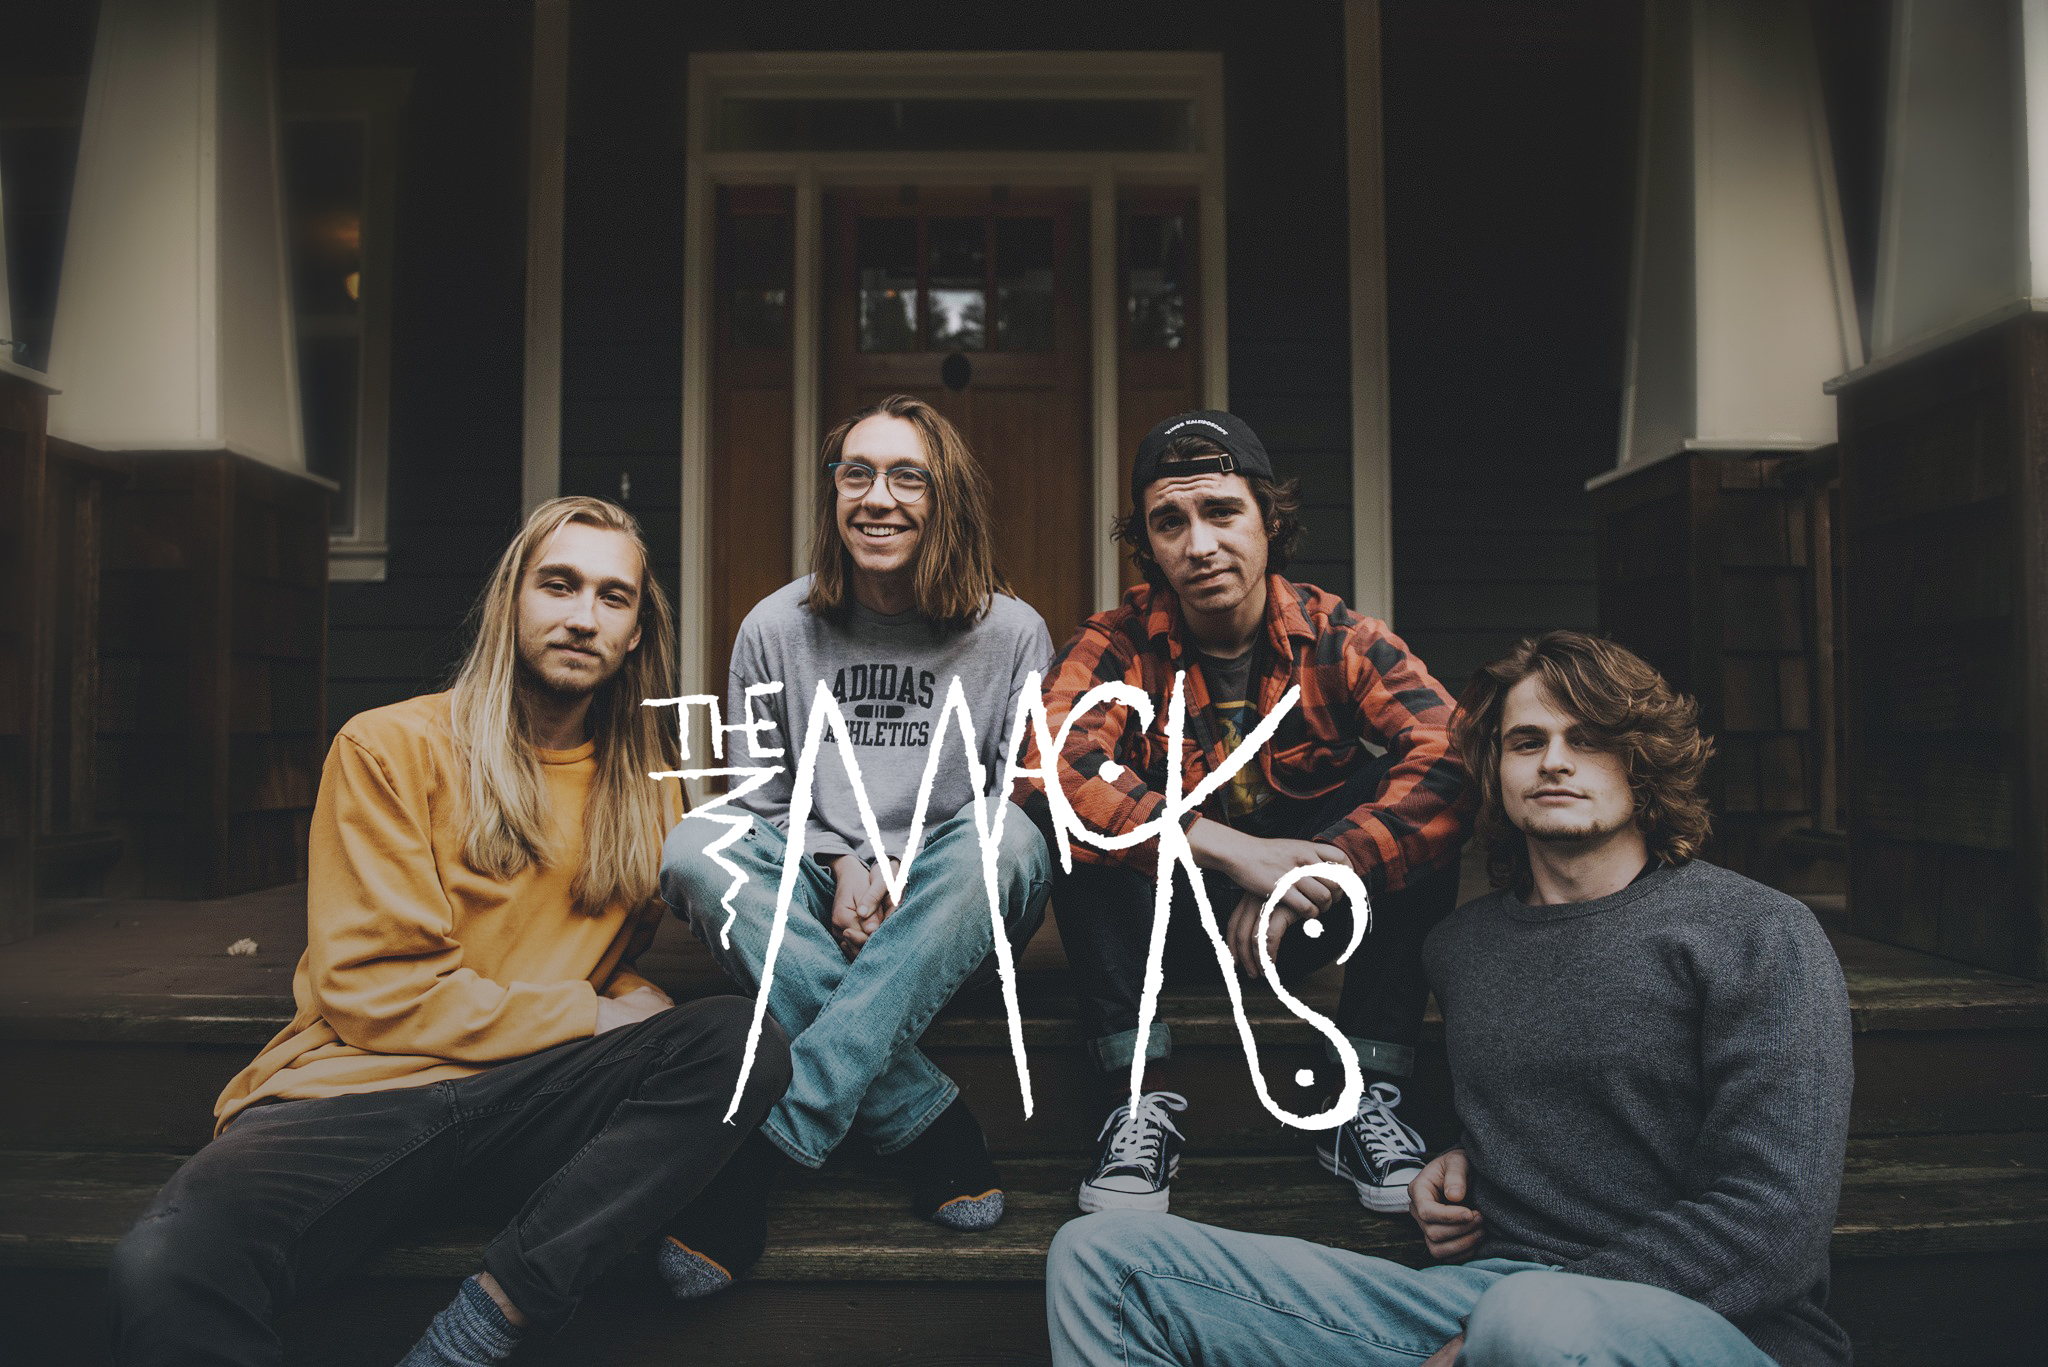 Portland-based rock band The Macks